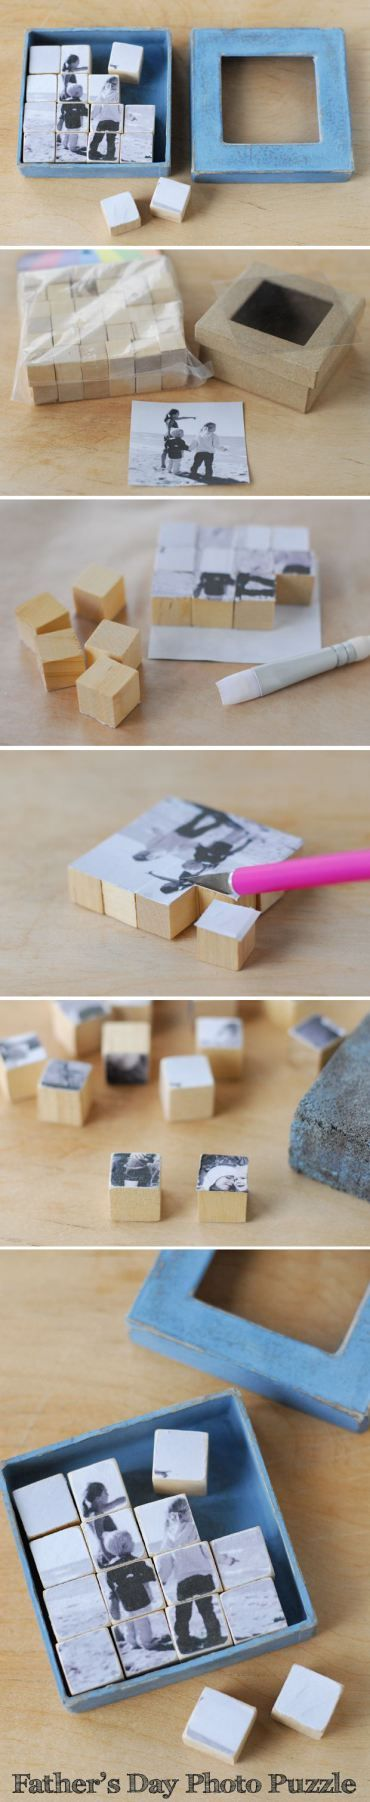 DIY: Upcycled Father's Day Gifts ideas (avoid consuming!) | ecogreenlove